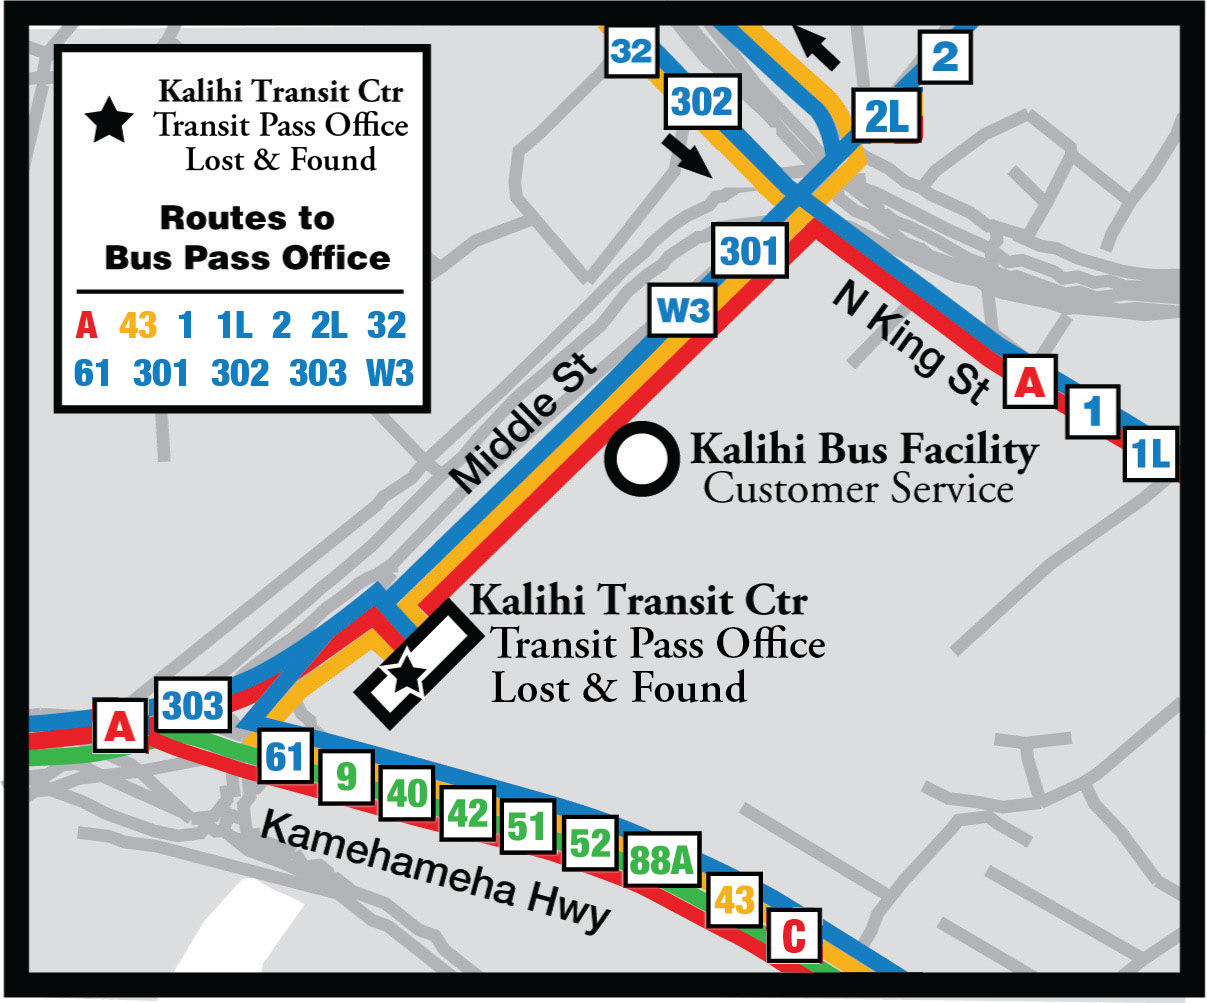 Kalihi Transit Facility Map